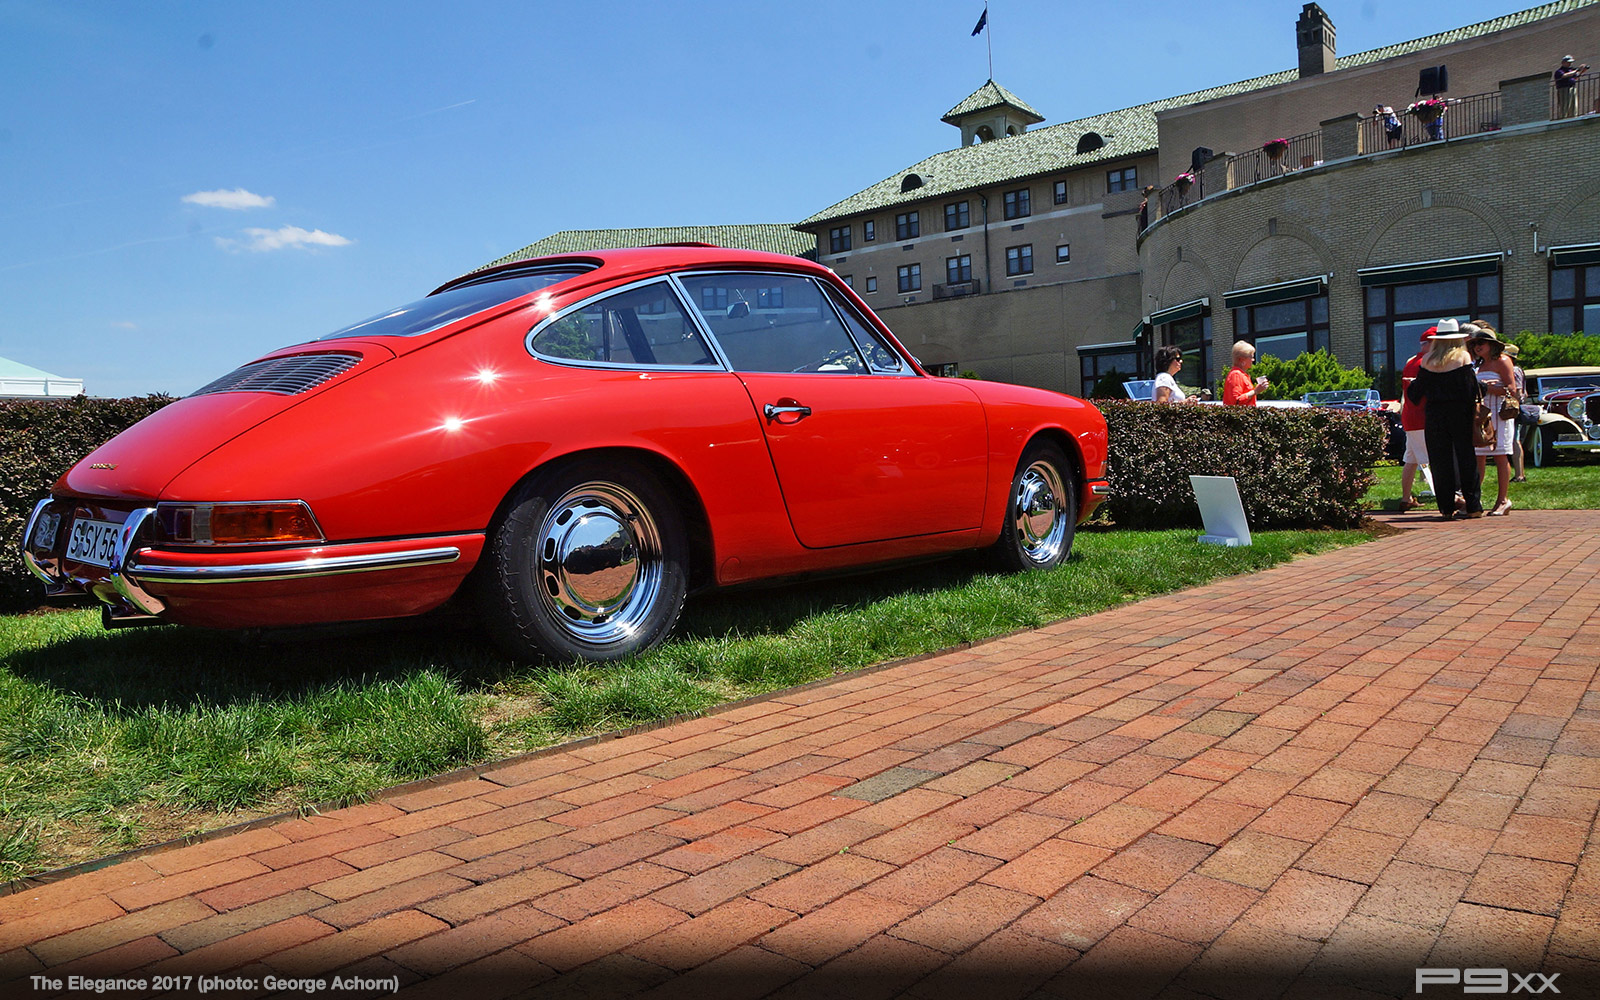 Event report porsche at the elegance 2017 p9xx when it comes to 911 lore you dont get much more original than this 1963 porsche 901 prototype owned by don and diane meluzio of york pennsylvania vanachro Gallery